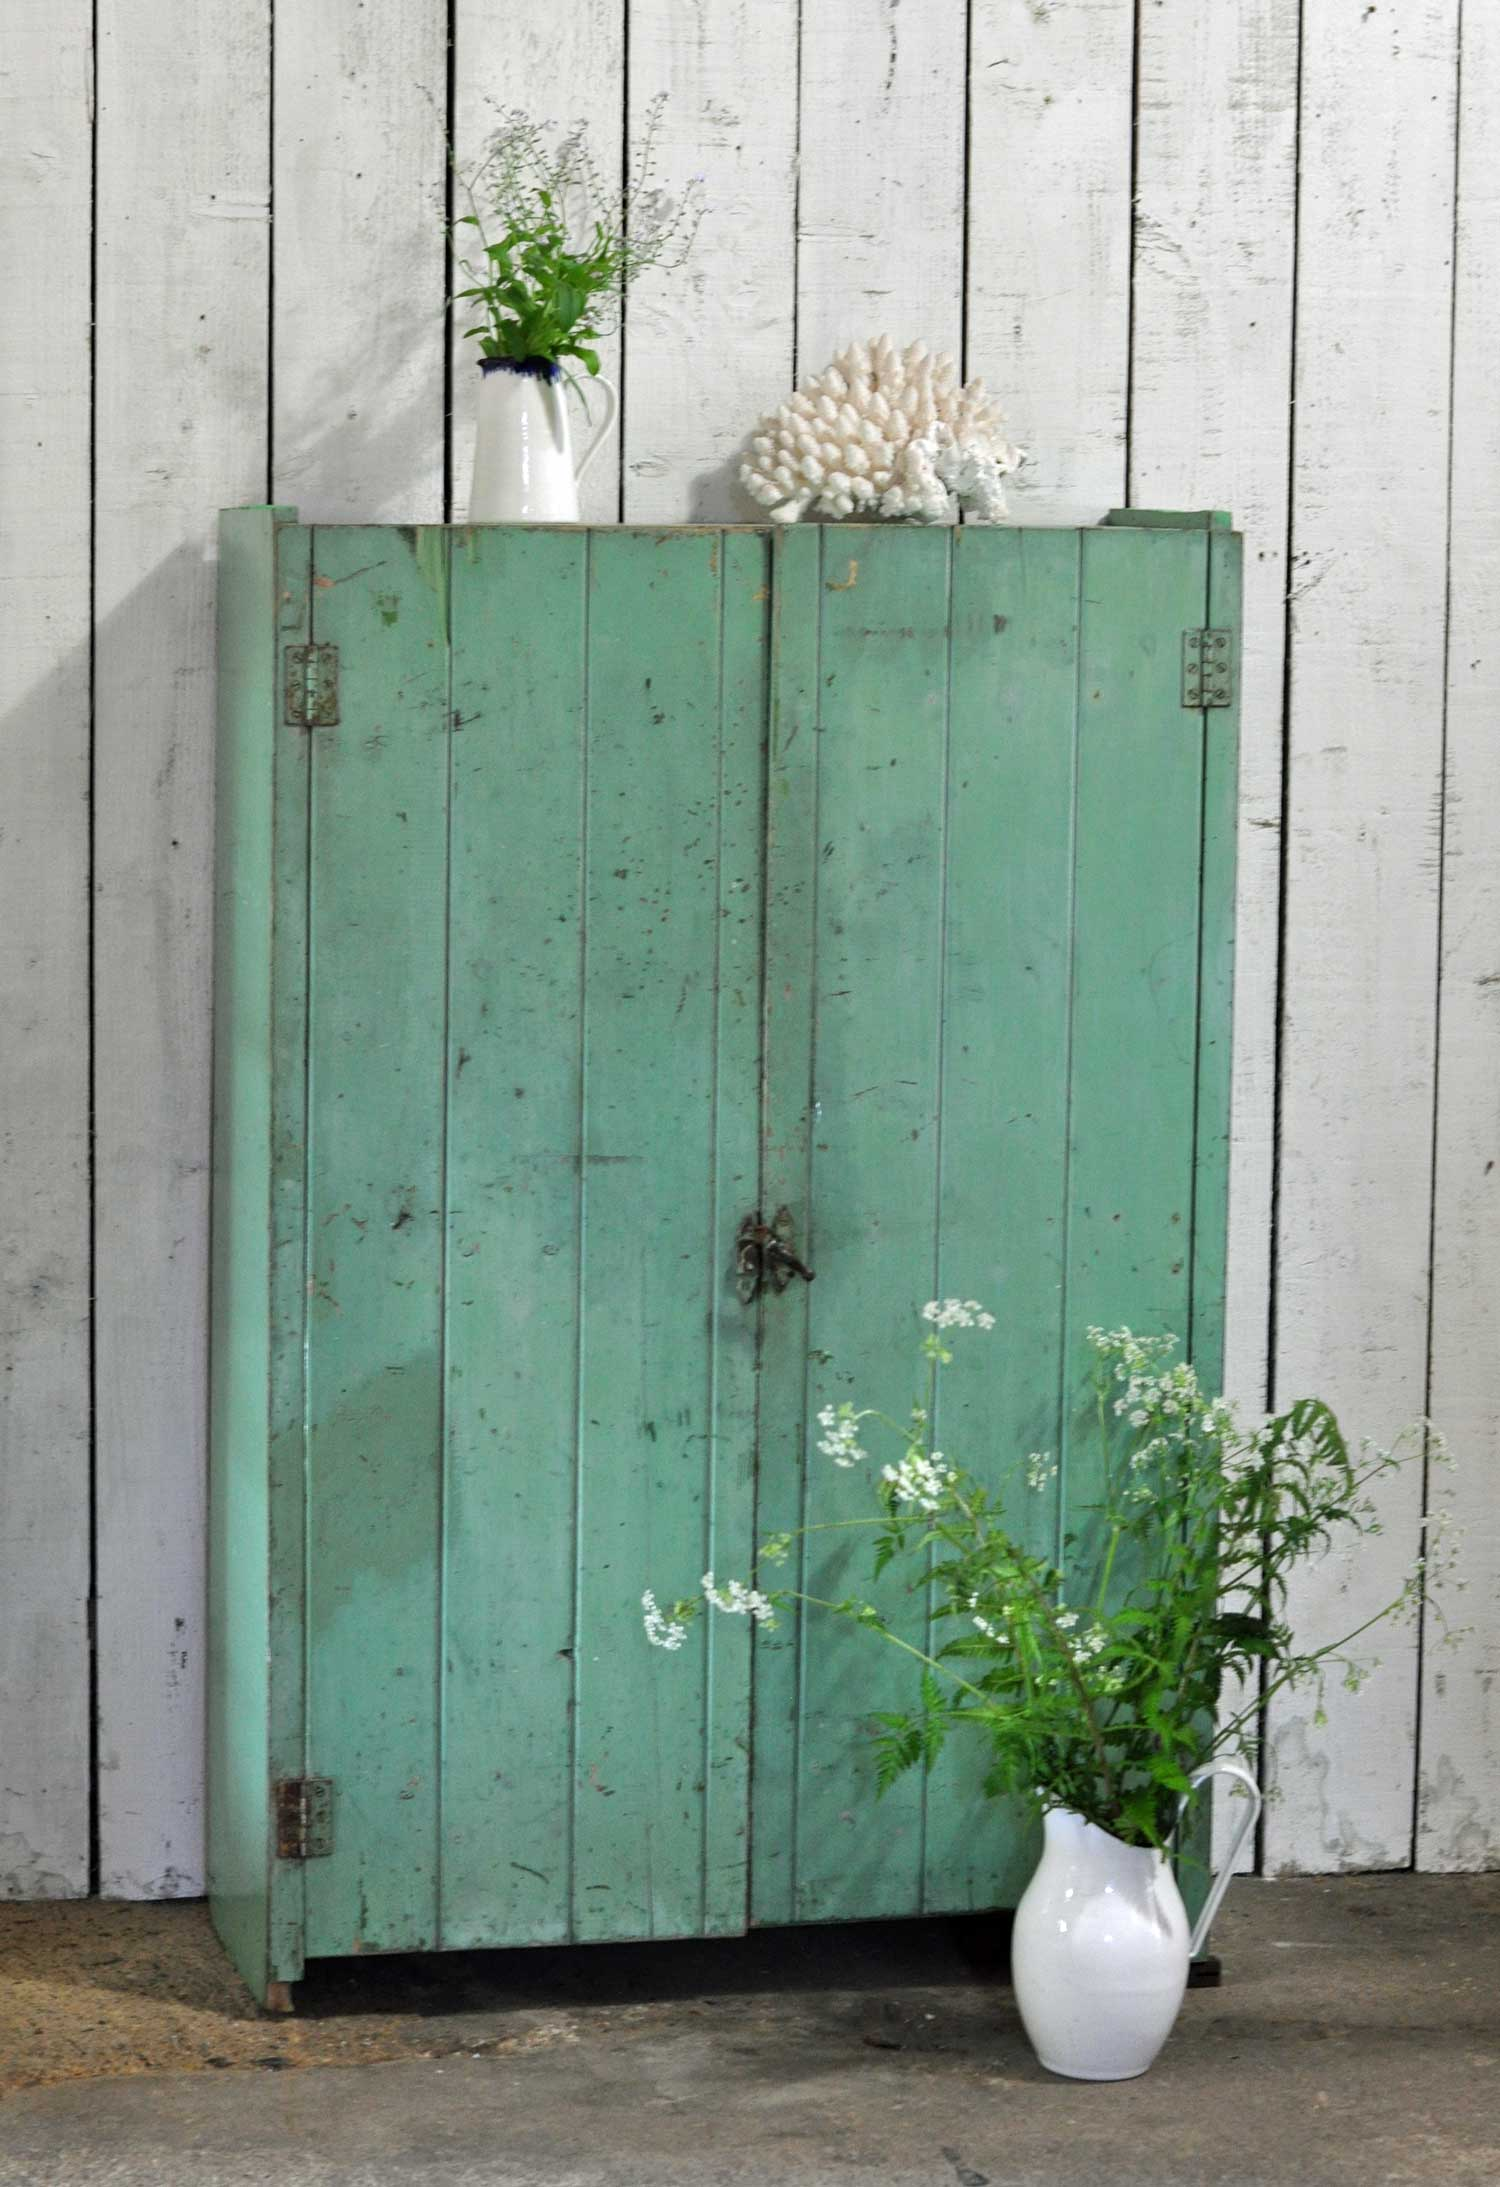 Dings And Dents >> Slim Tongue and Groove Antique Victorian Two Door Cupboard ...